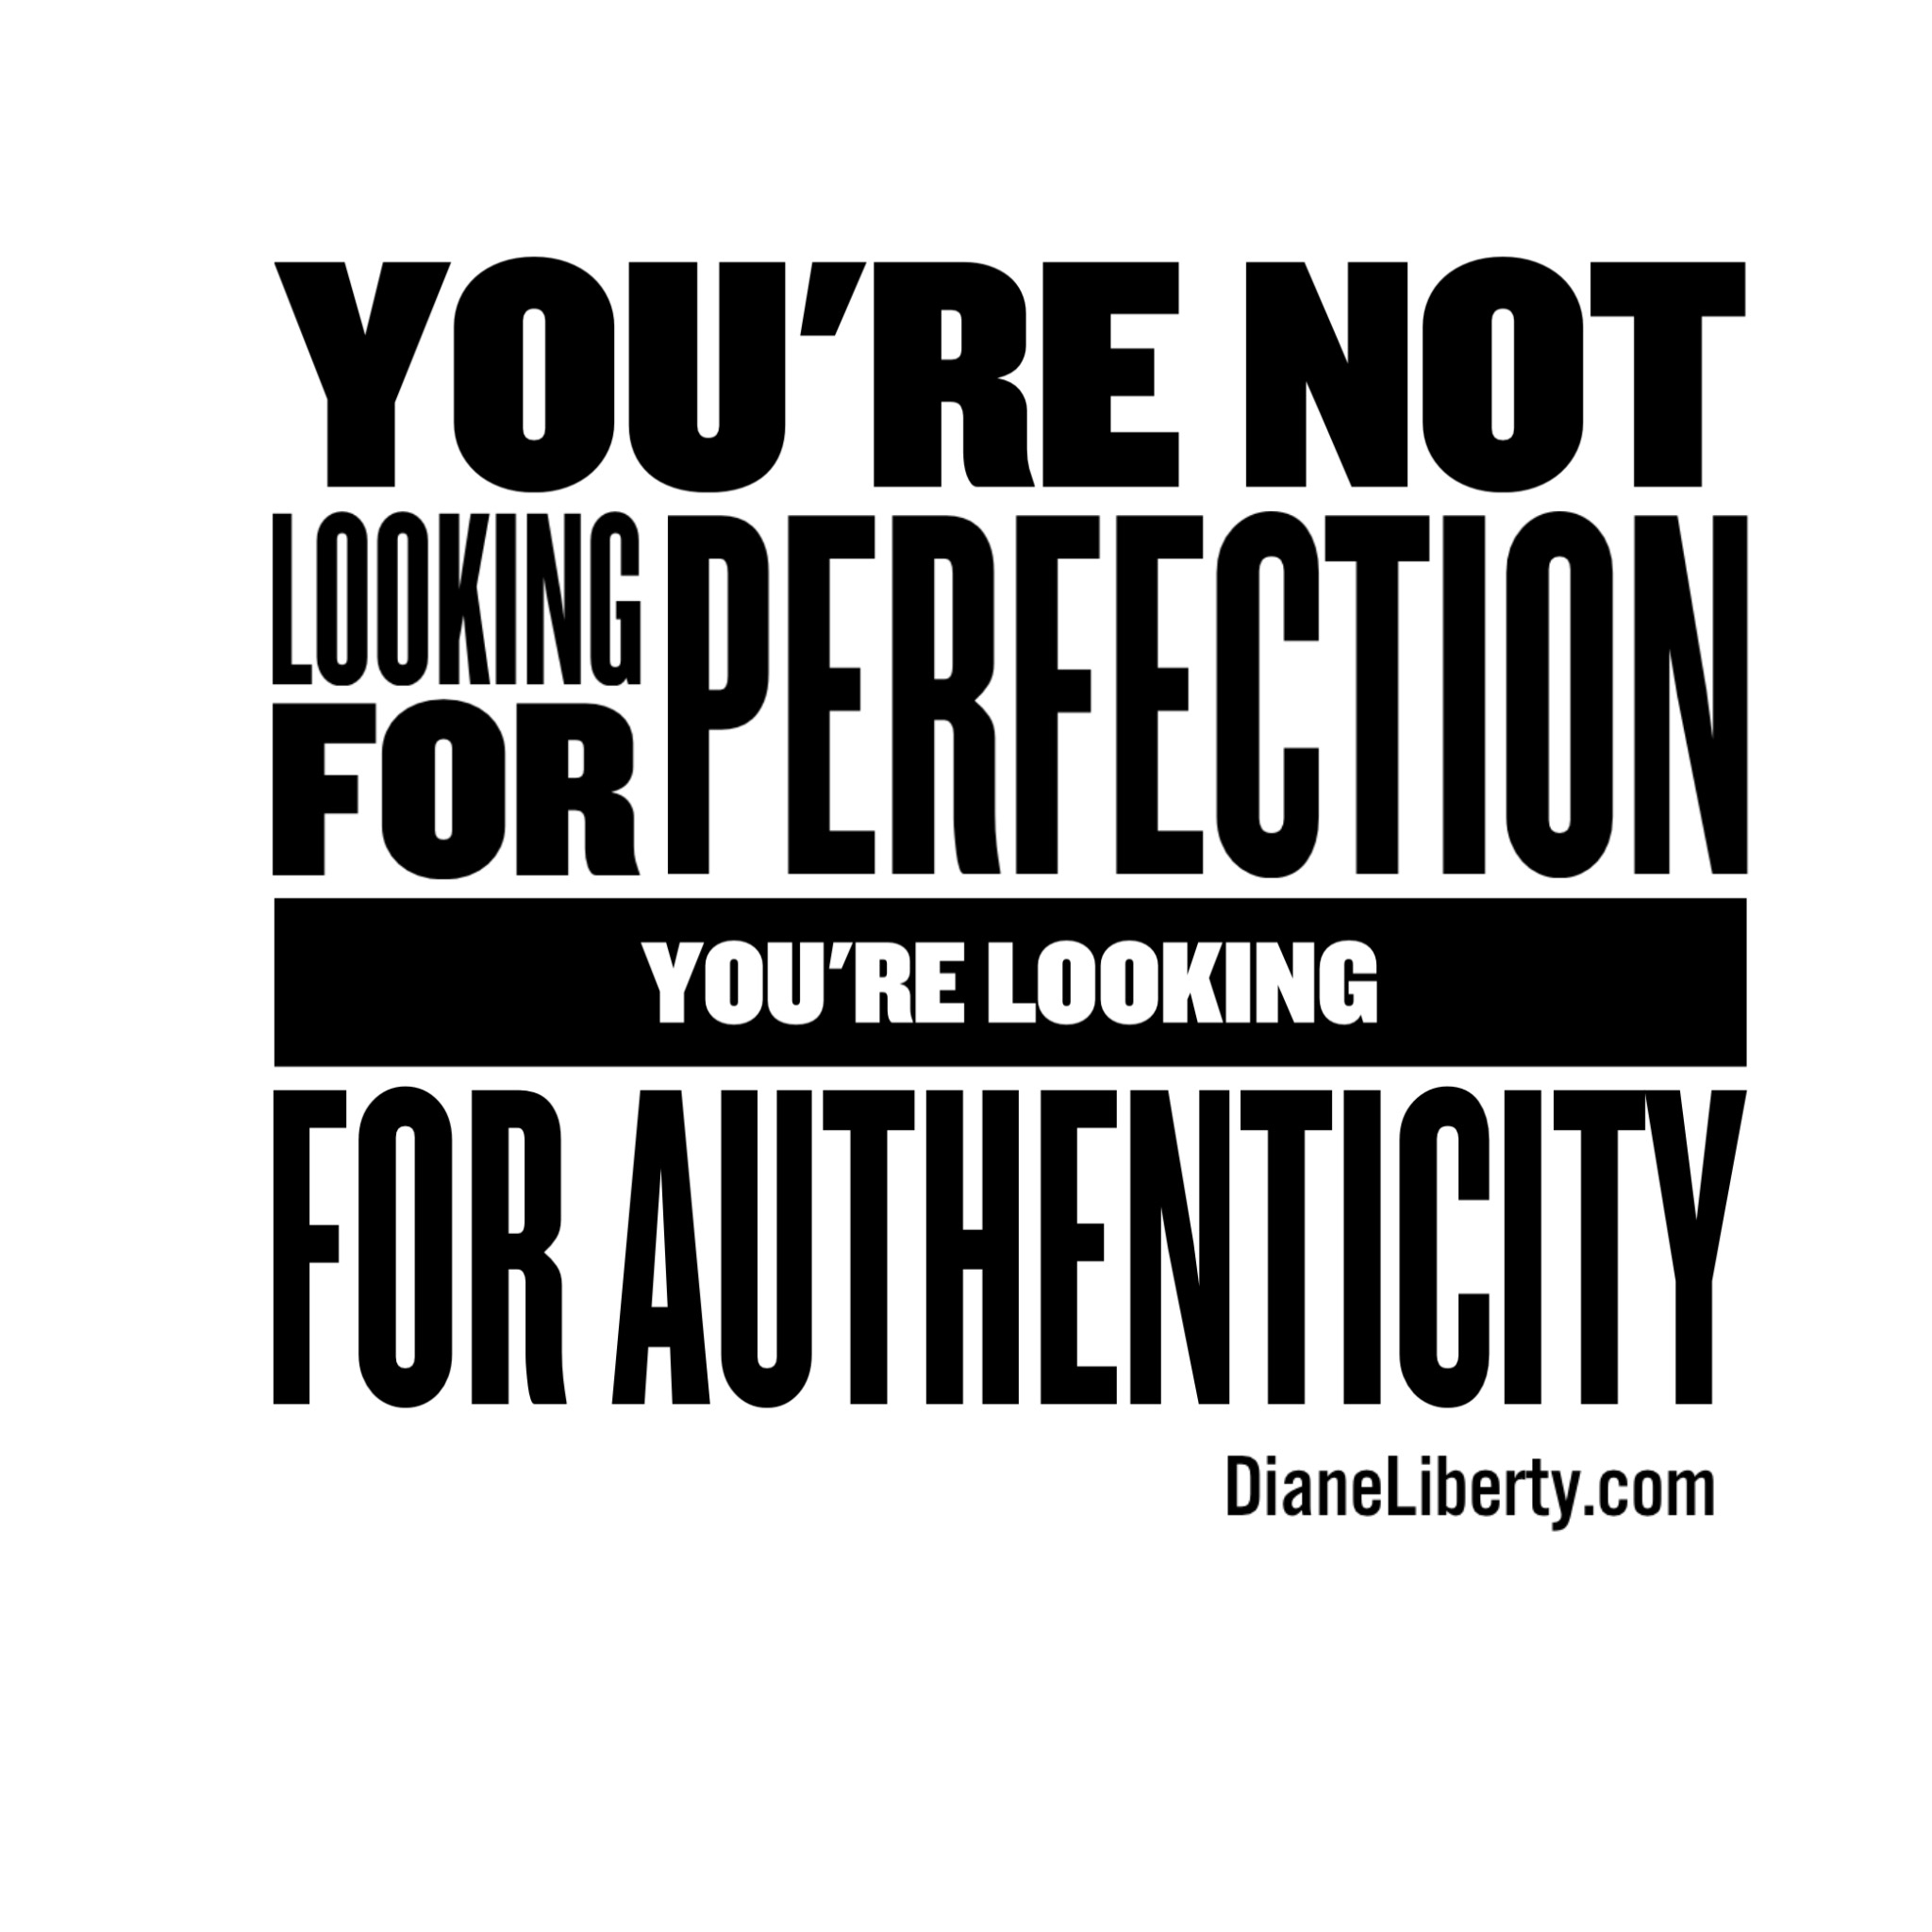 You're Not Looking For Perfection